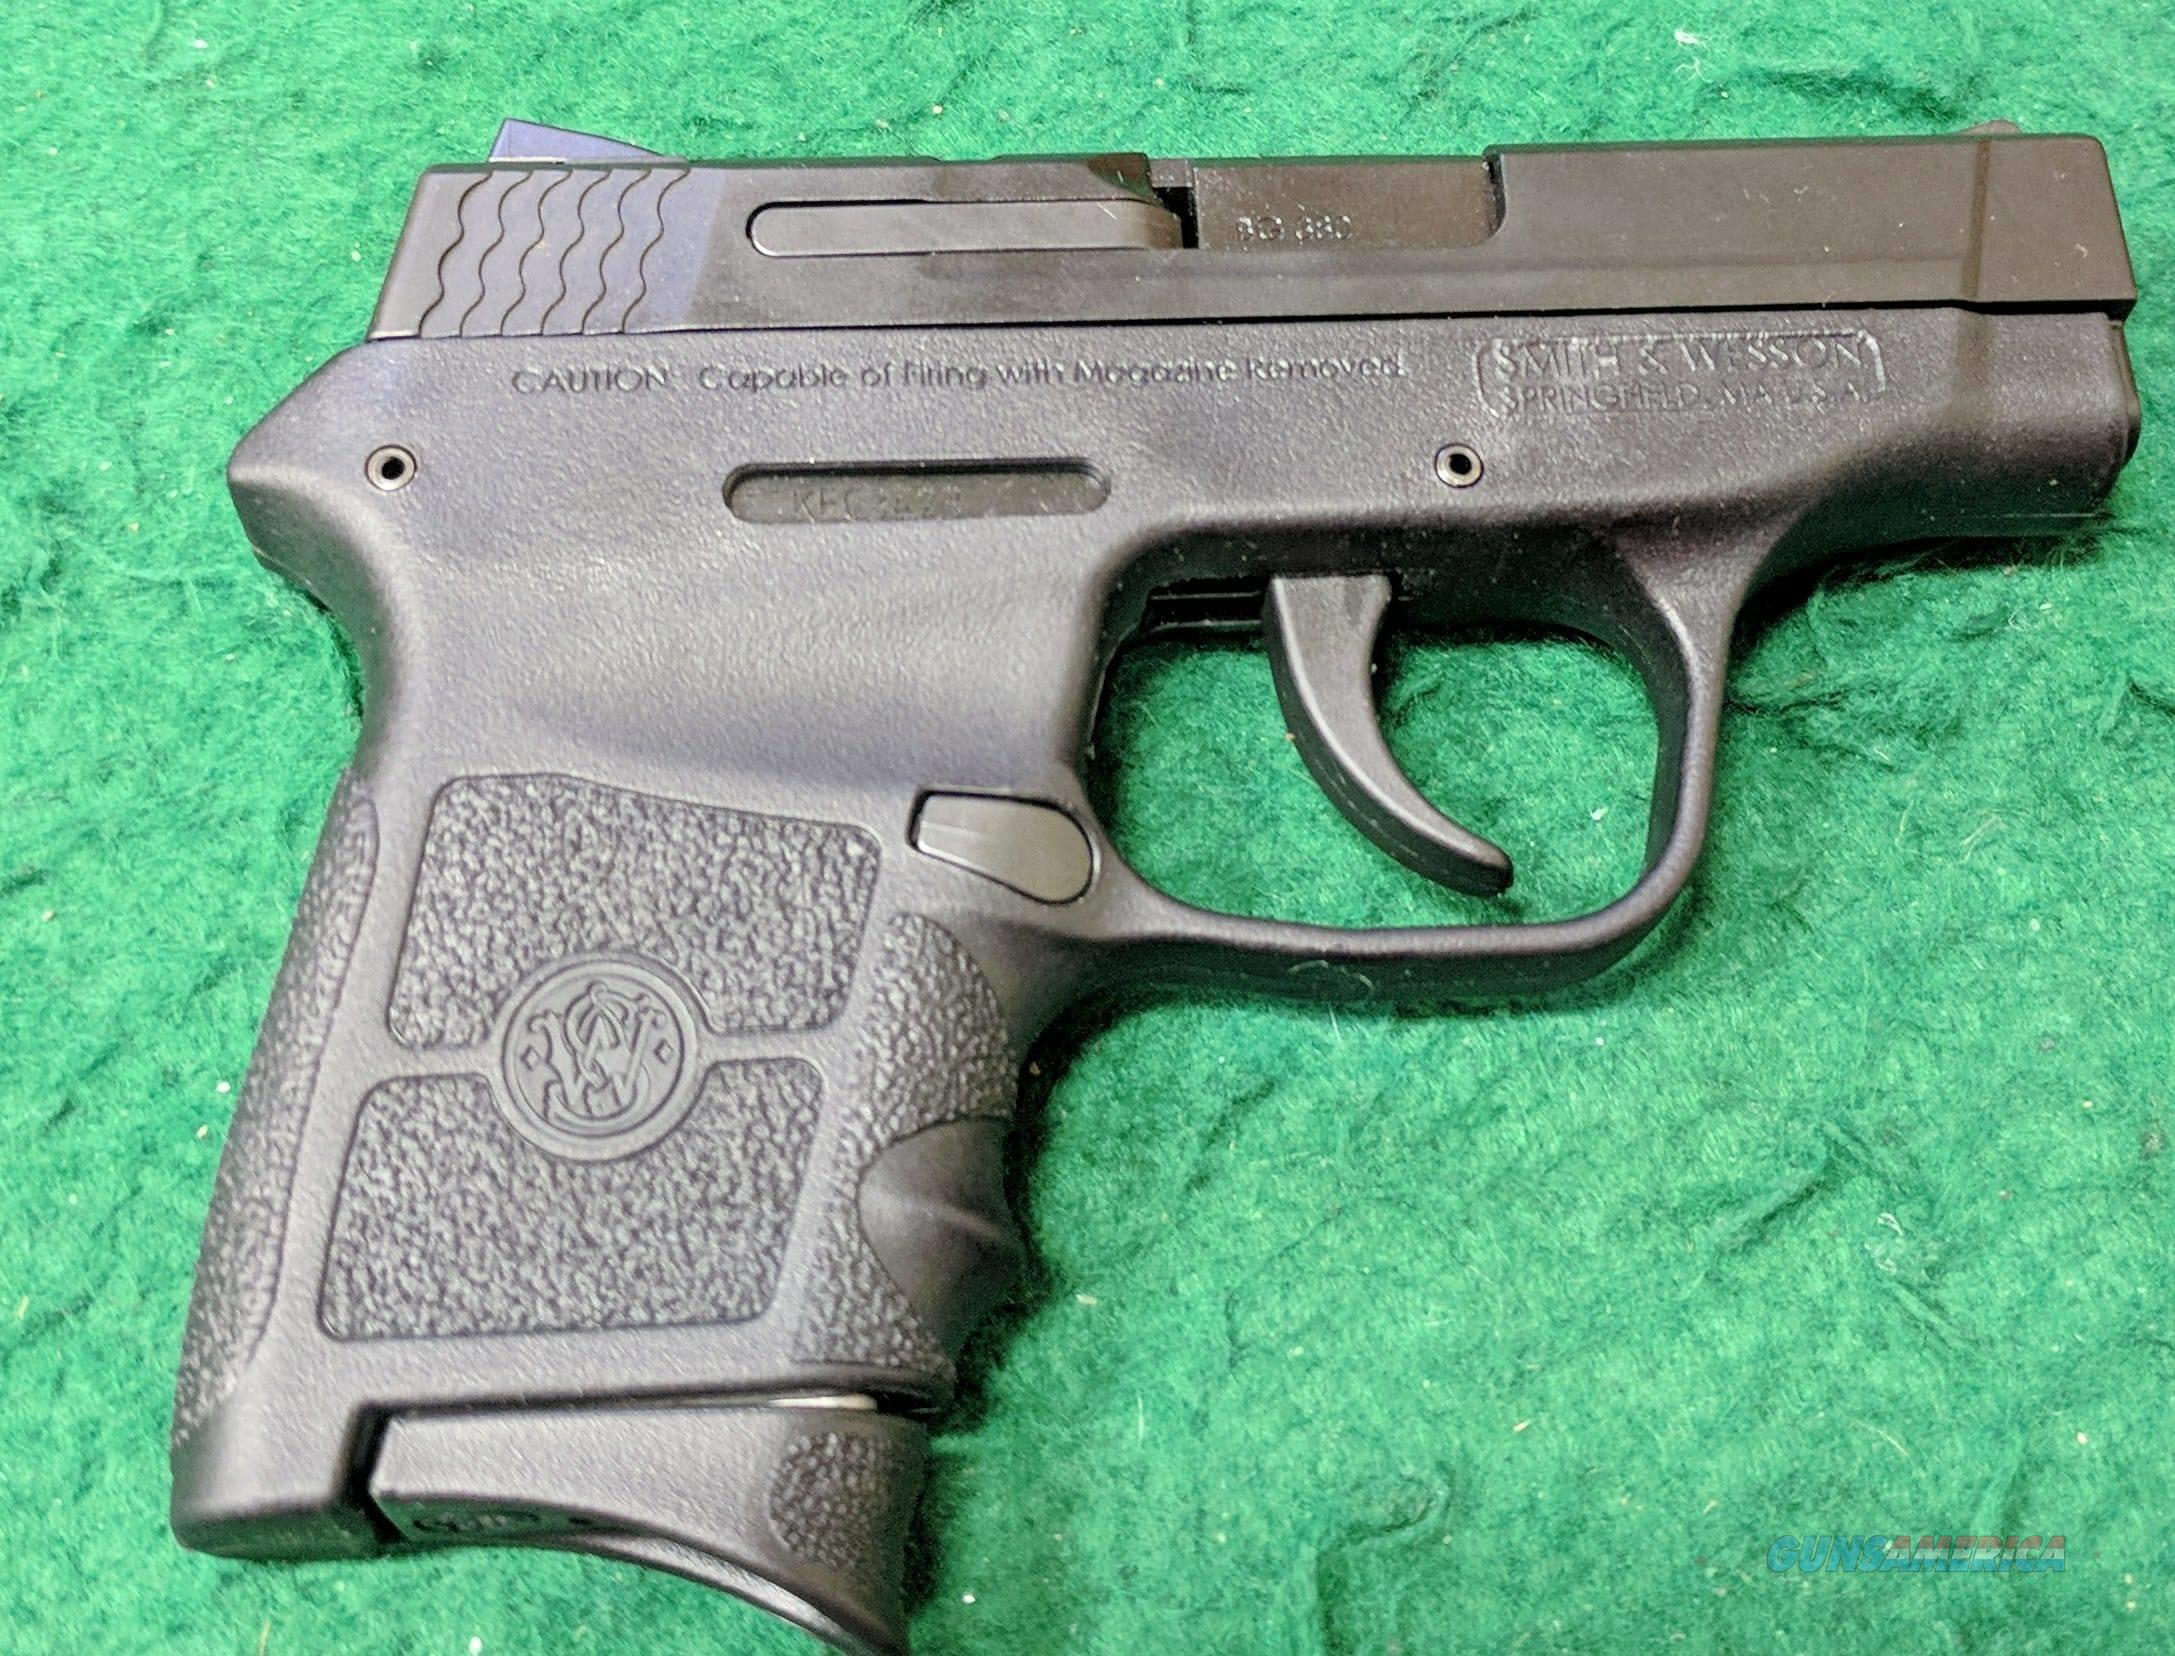 Smith & Wesson - M&P Bodyguard - .380  Guns > Pistols > Smith & Wesson Pistols - Autos > Polymer Frame